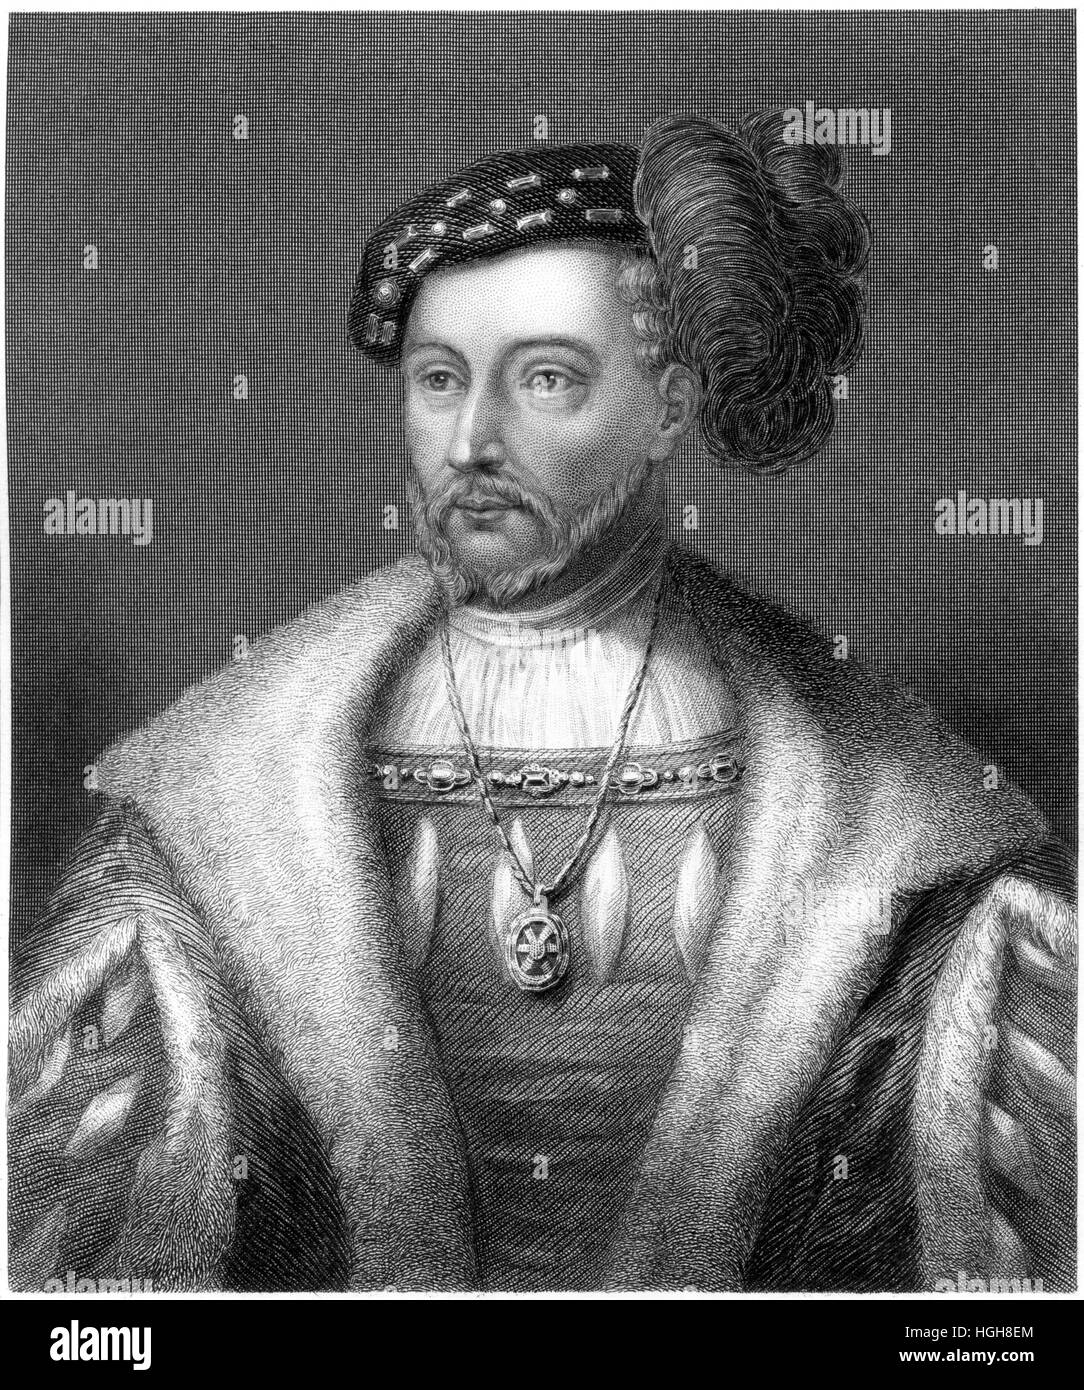 An engraving of James V of Scotland (from a Painting in the Duke of Devonshire's Possession) scanned at high resolution Stock Photo